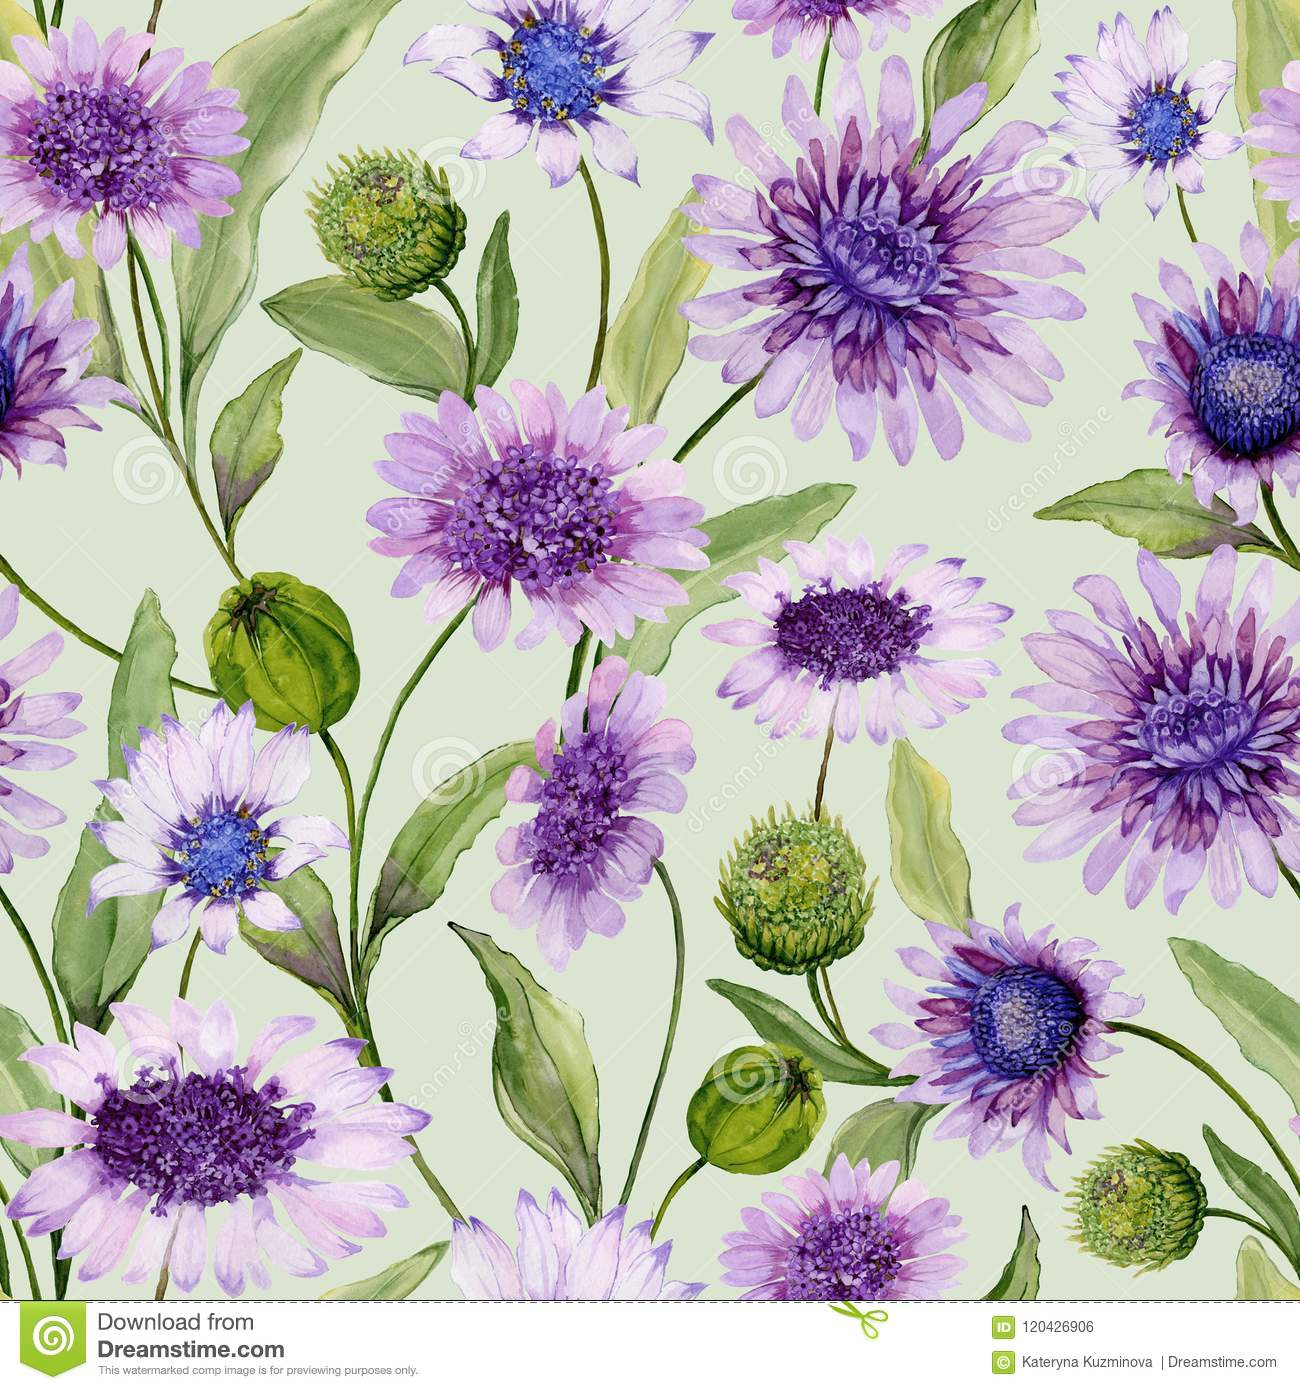 Beautiful Blue And Purple Daisy Flowers With Closed Buds And Leaves